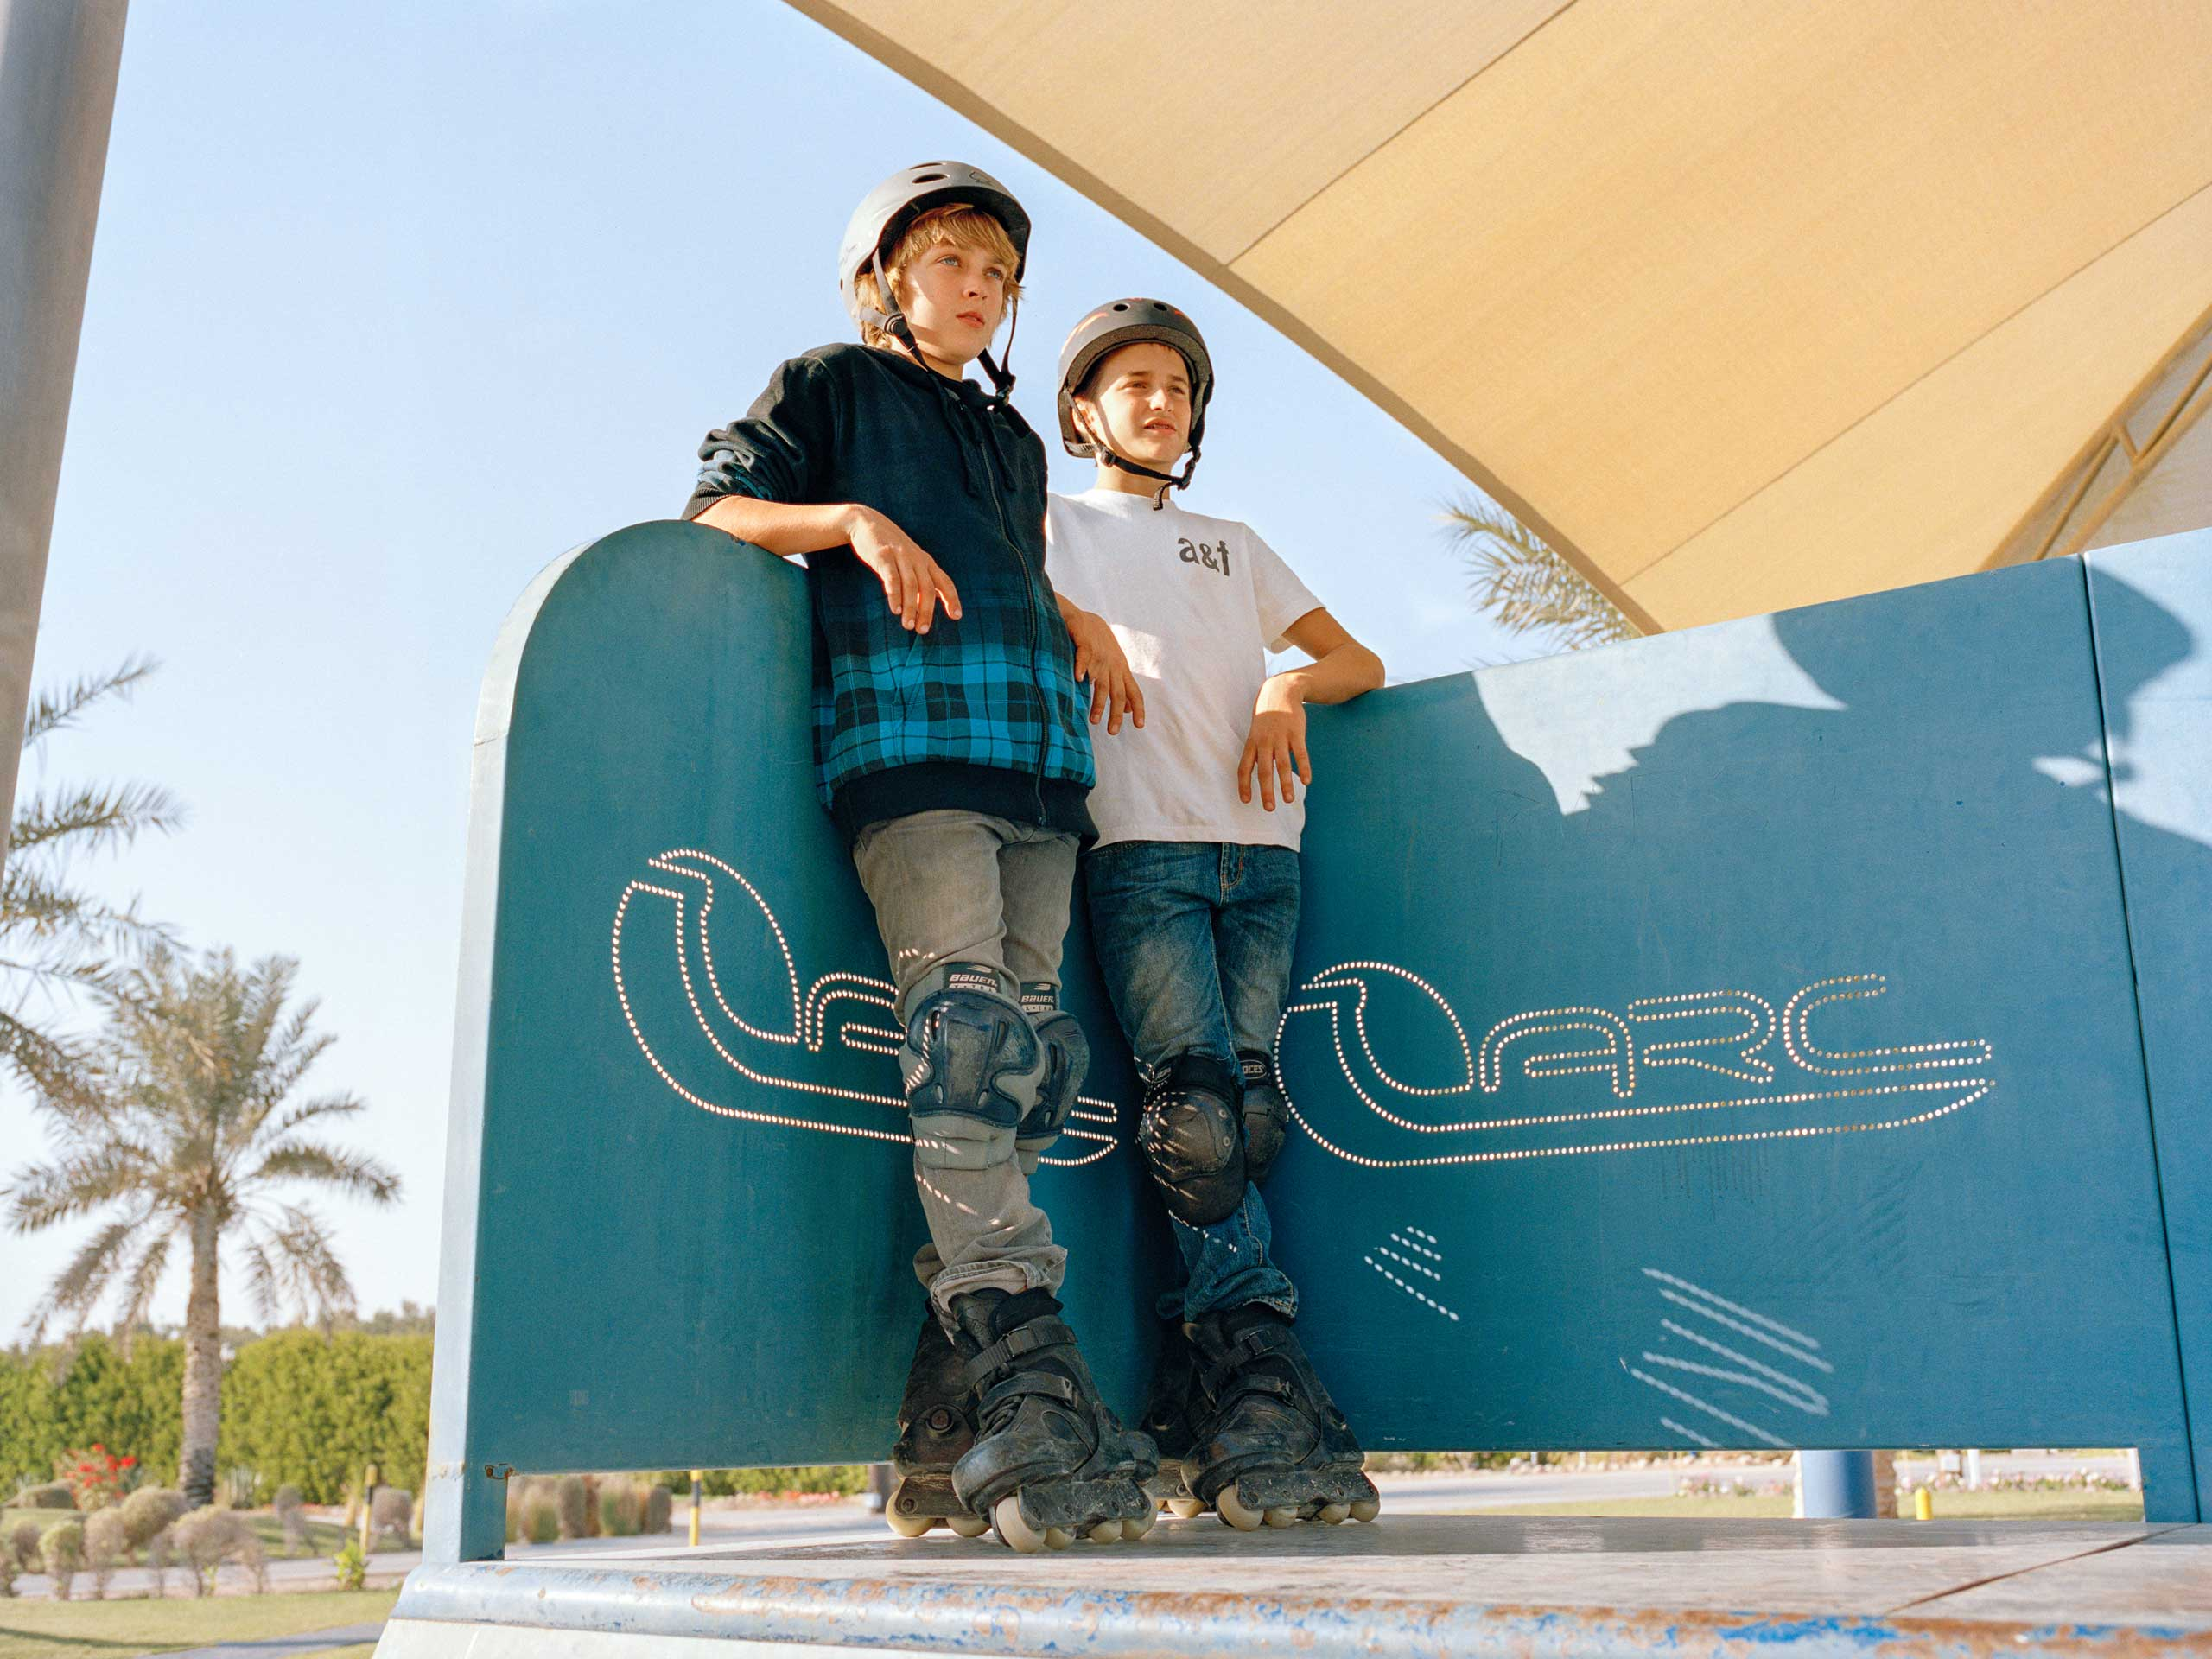 Two boys wait for their turn at a skate competition at the local skate park in Dhahran Hills.